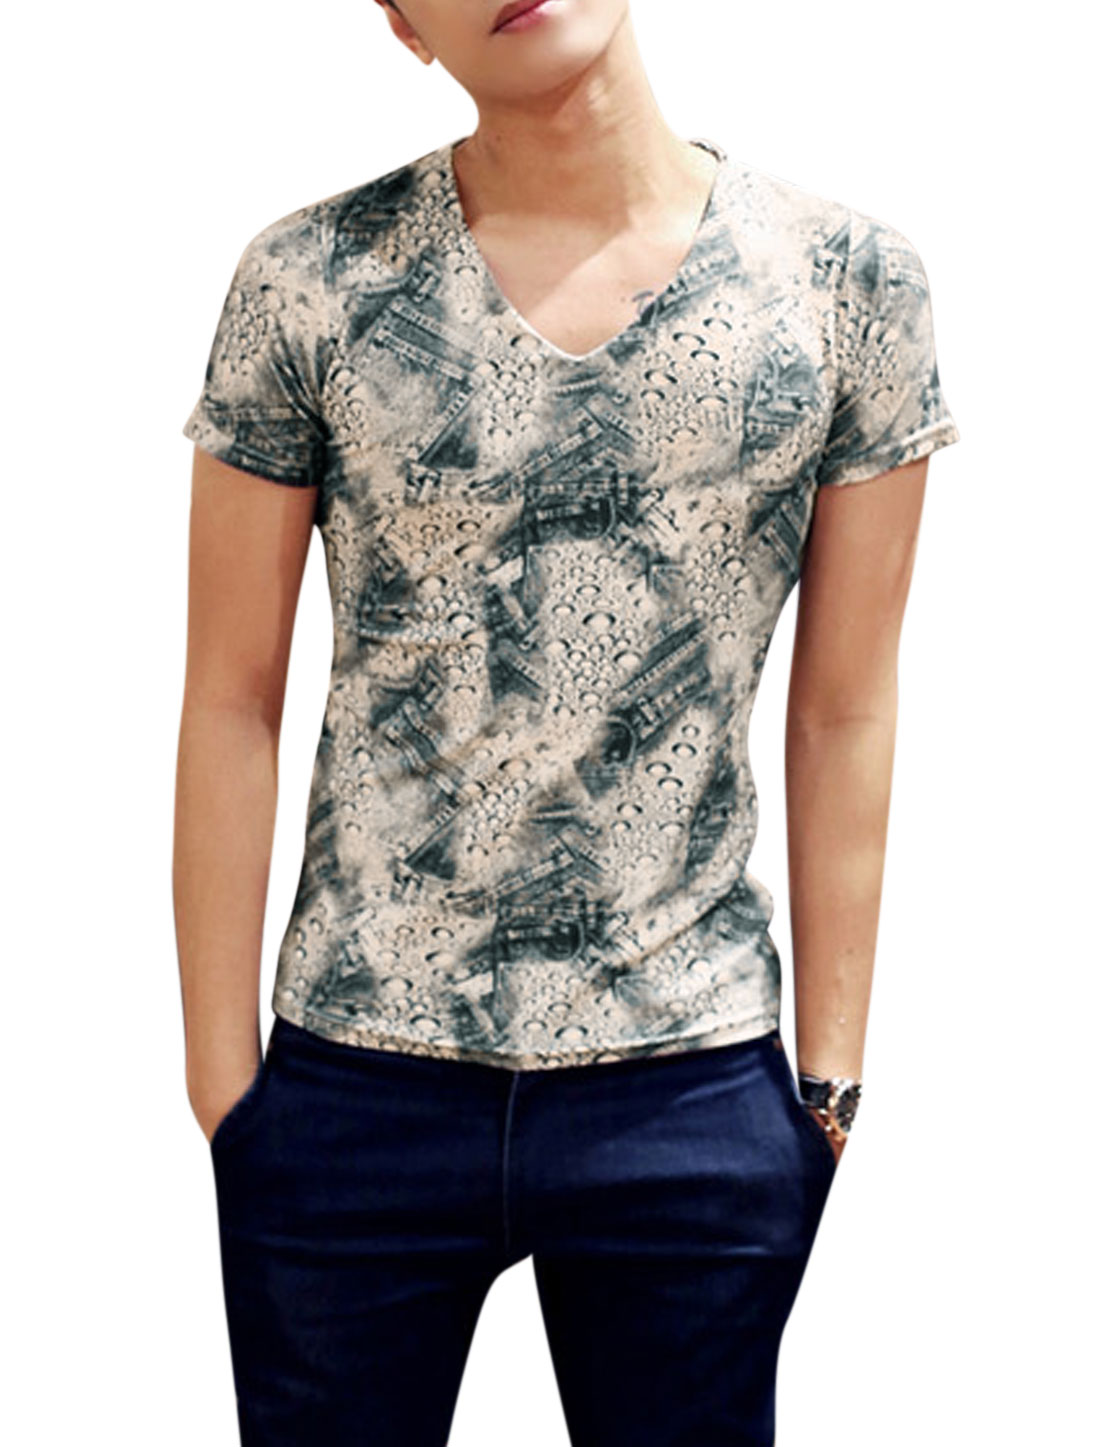 Man Water-drop Jeans Pattern V Neck Short Sleeves Slipover T-shirt Multicolor M